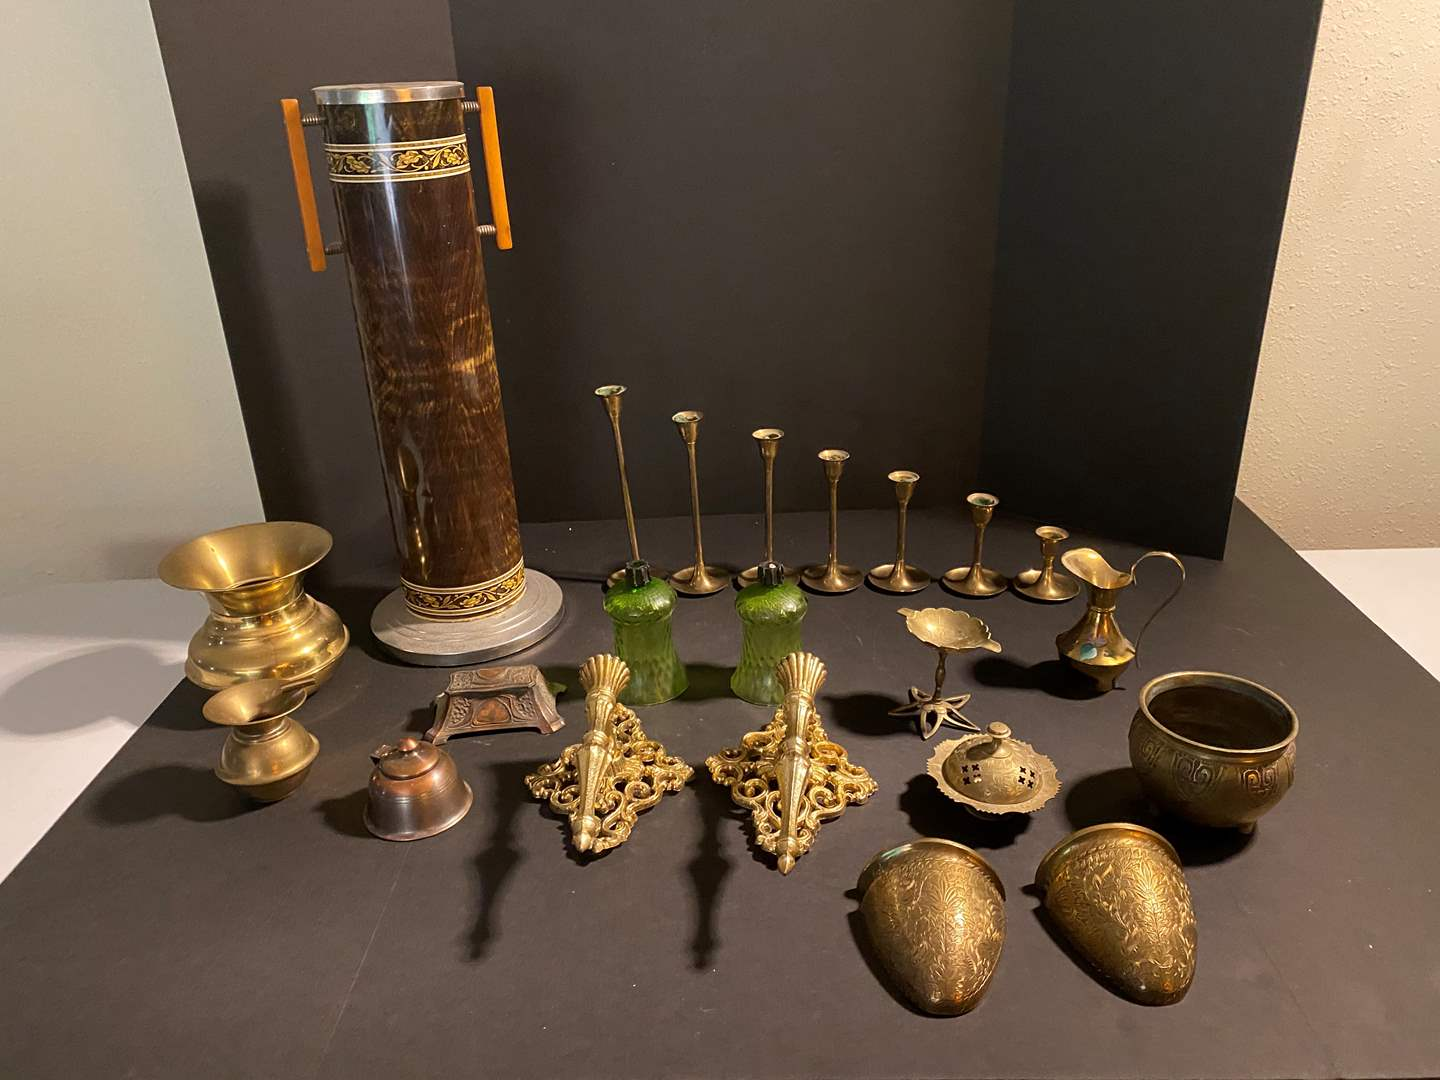 Lot # 48 - Tall Vintage Ashtray, Brass Candle Stick Holders, Brass Ashtrays, Brass Spittoon & More.. (main image)